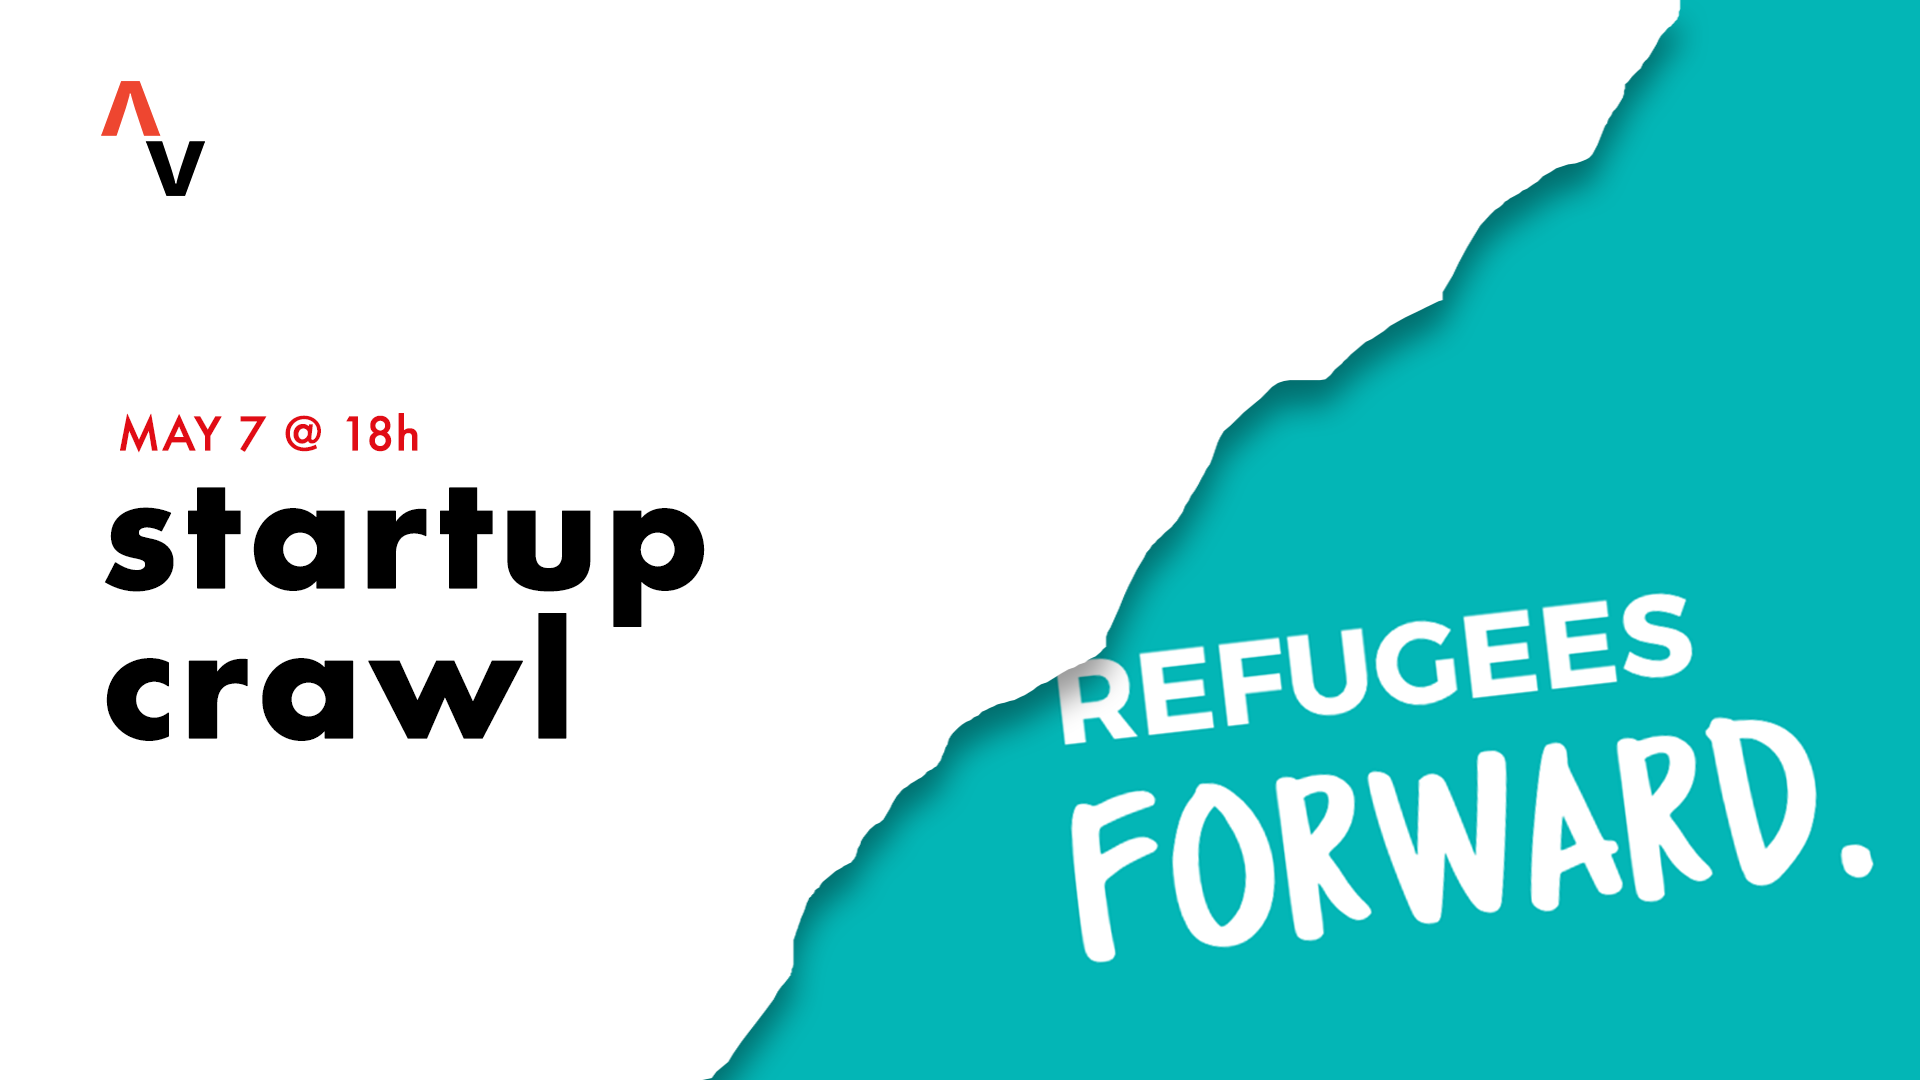 ASIF_Startup Crawl_Refugees Forward.png